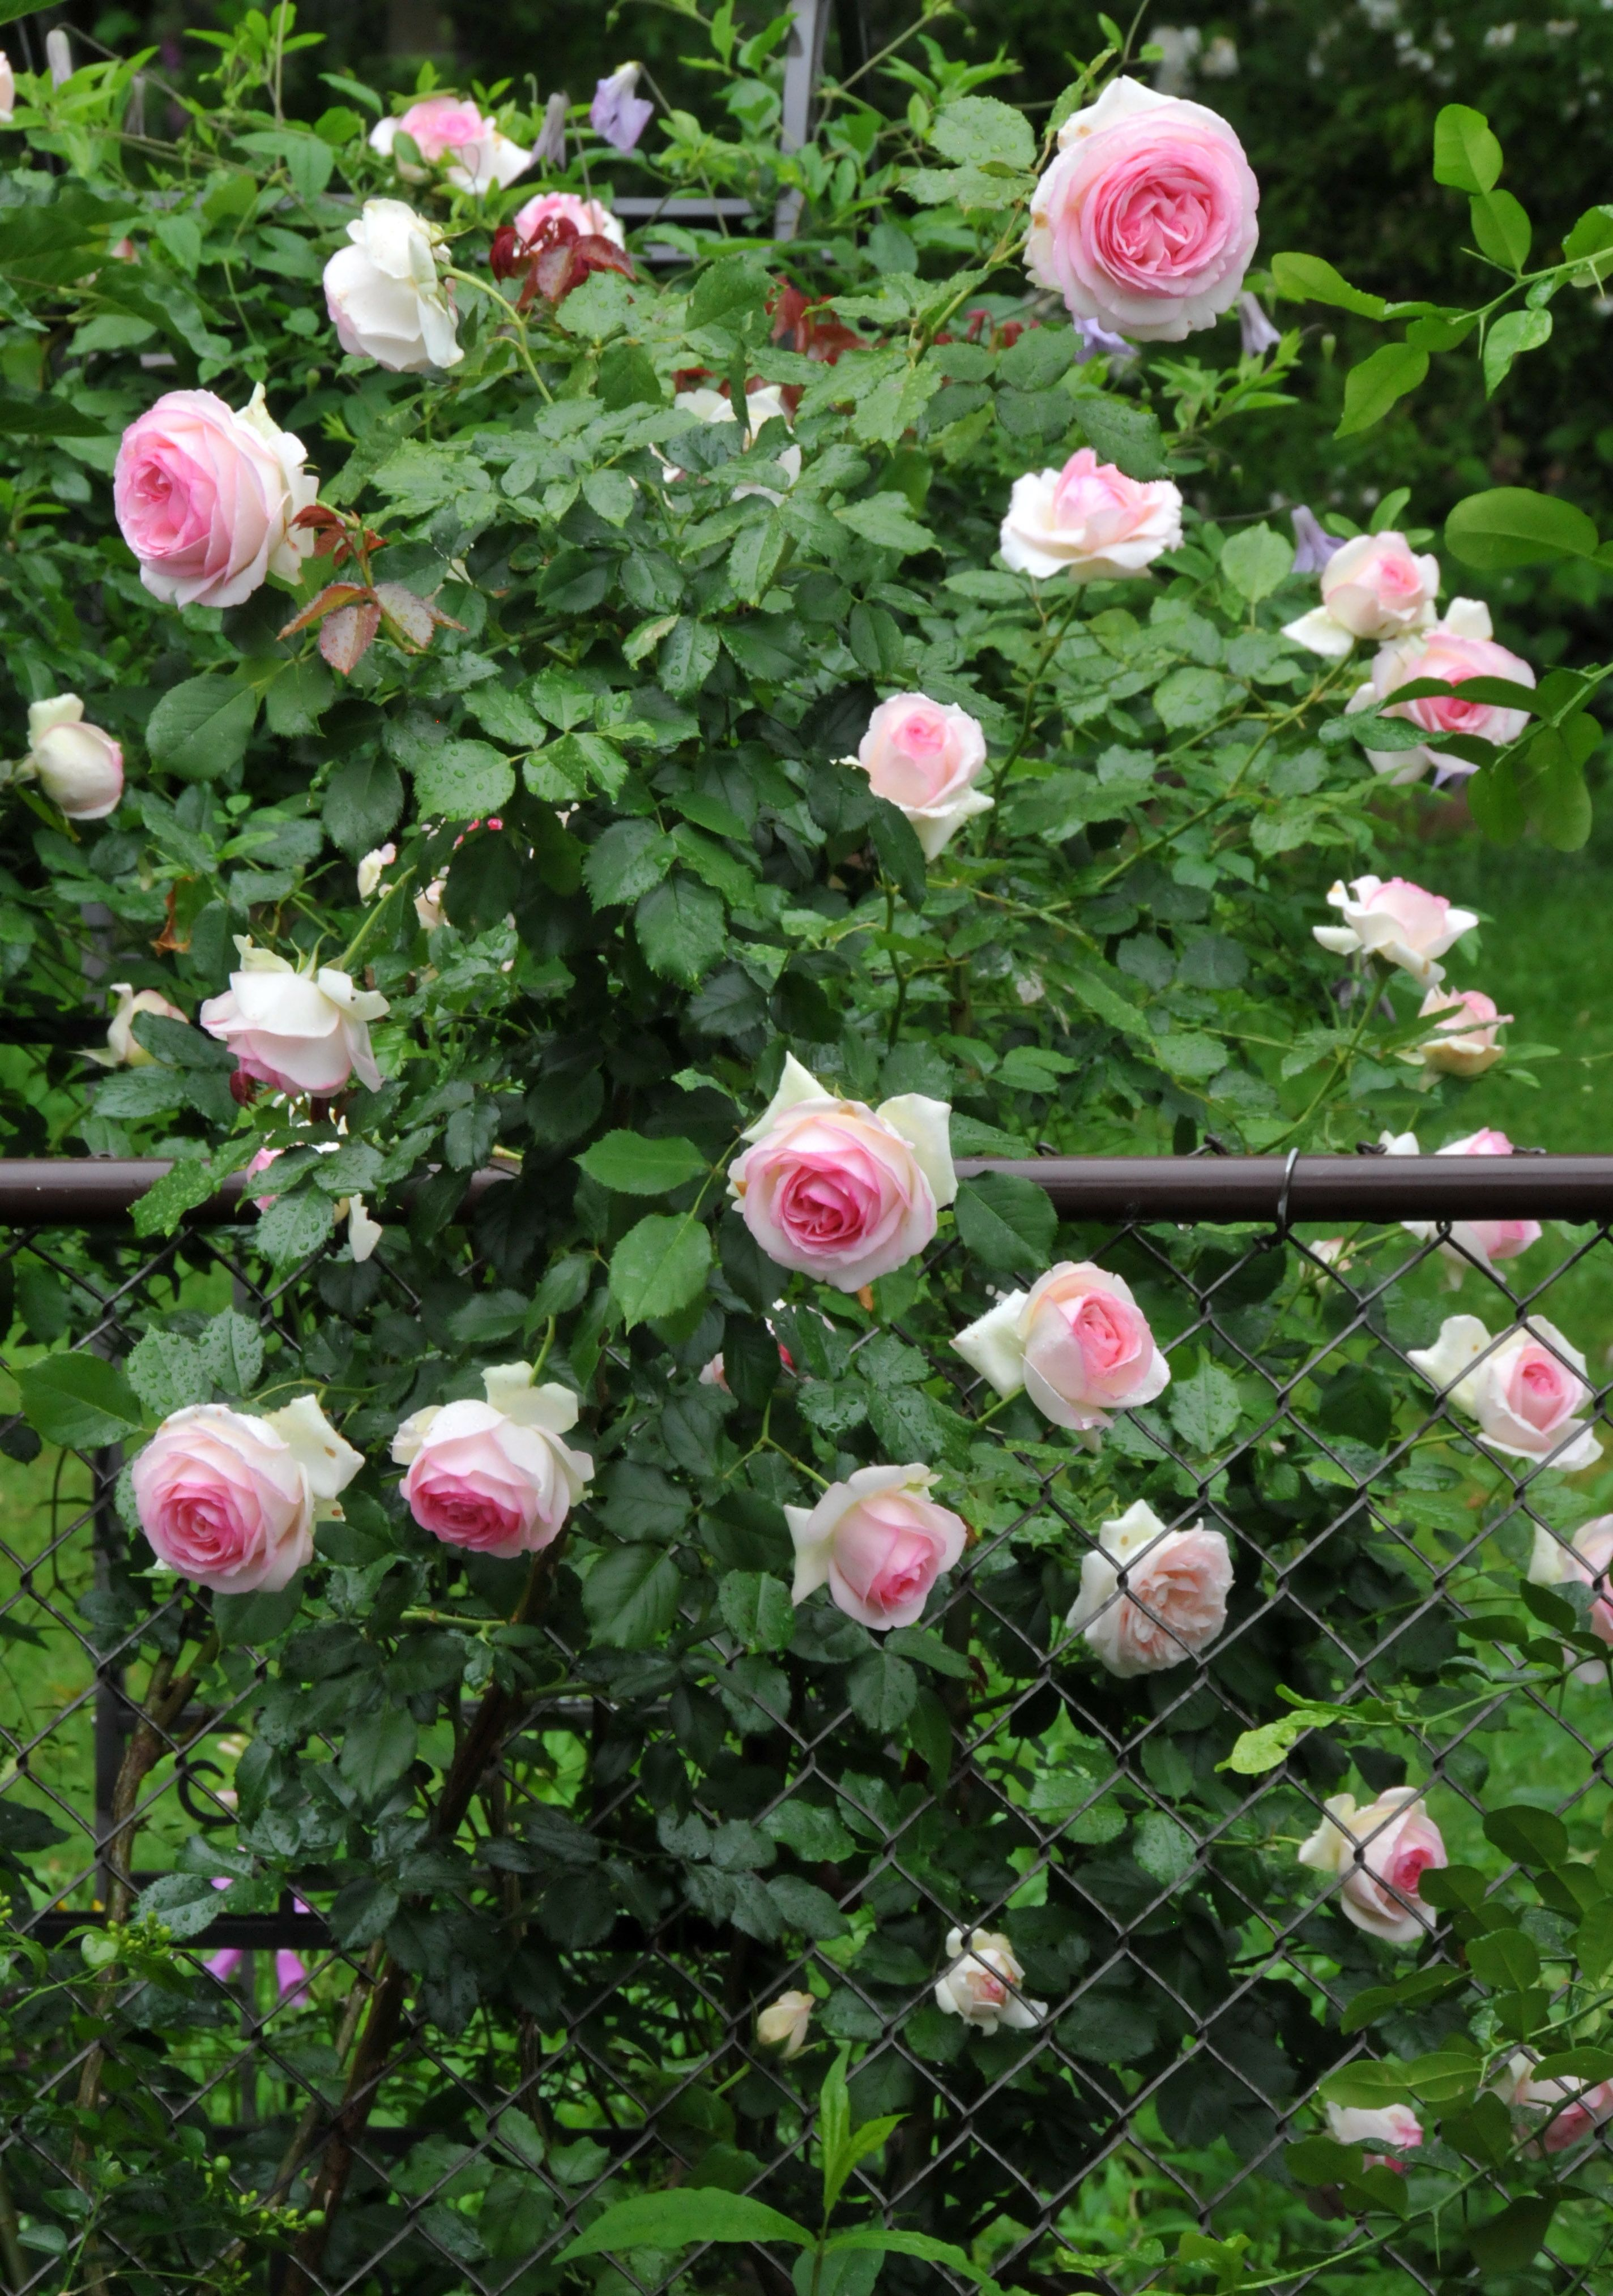 Roses In Garden: Rosa Heritage - Google Search